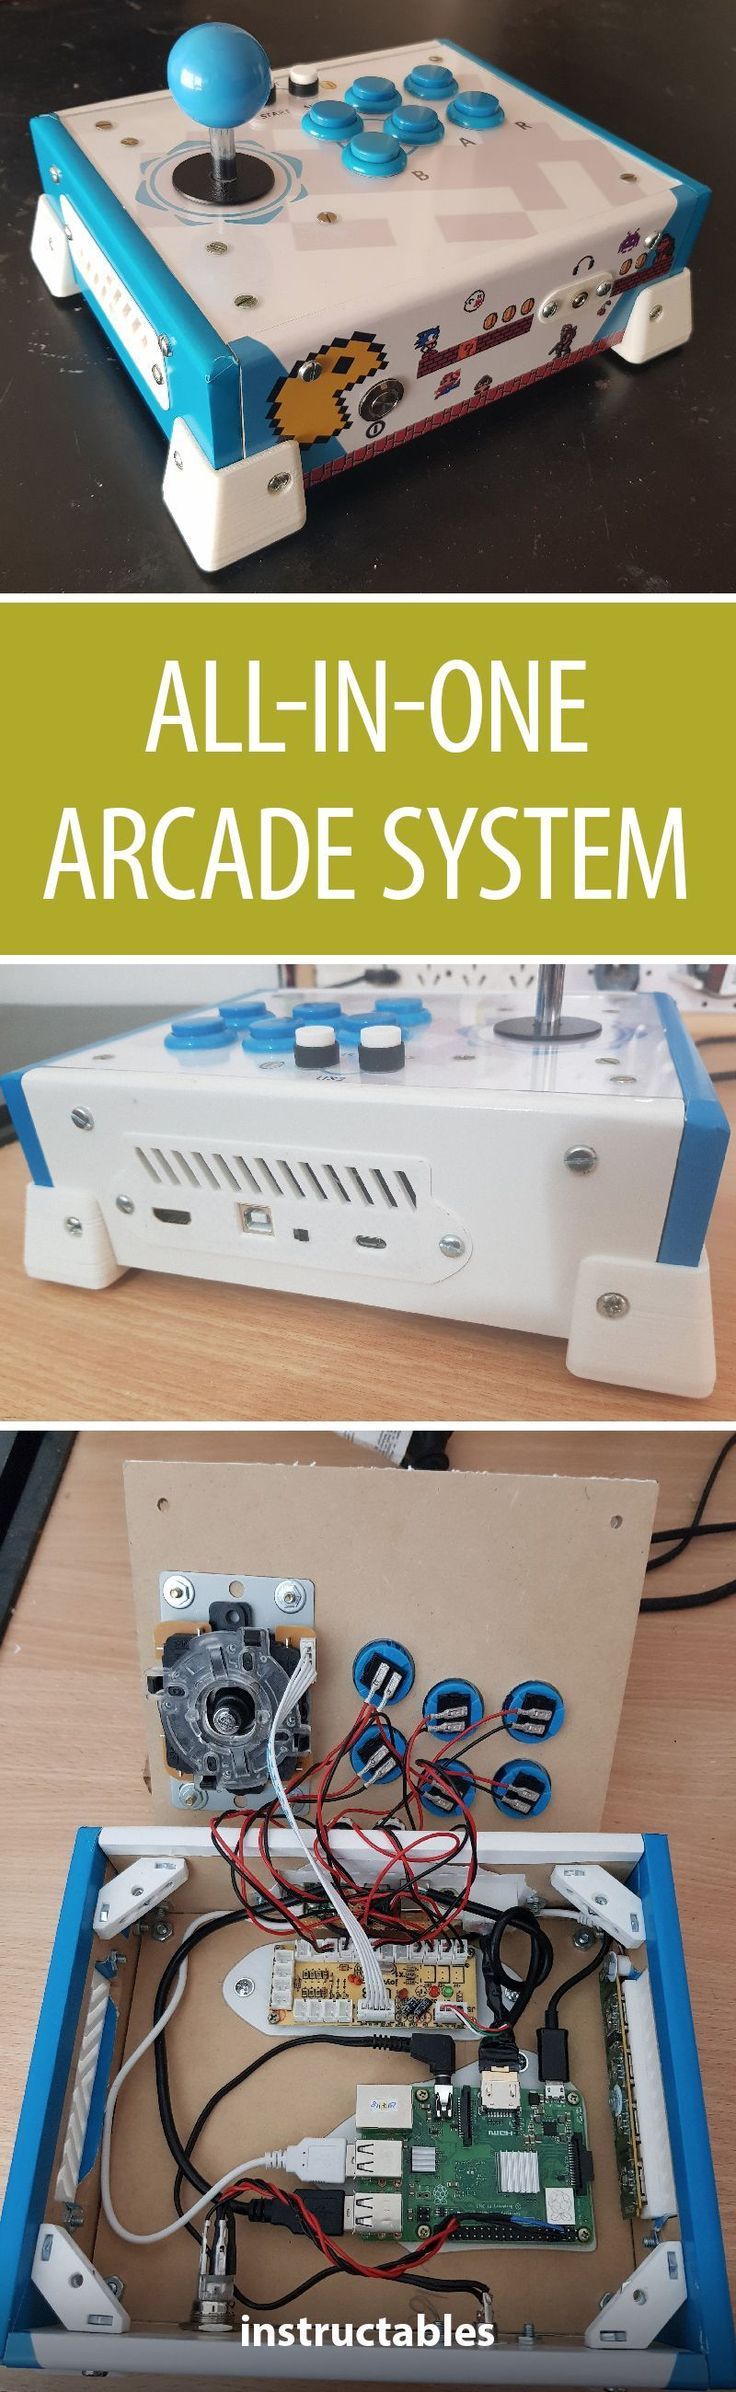 All in One Arcade System